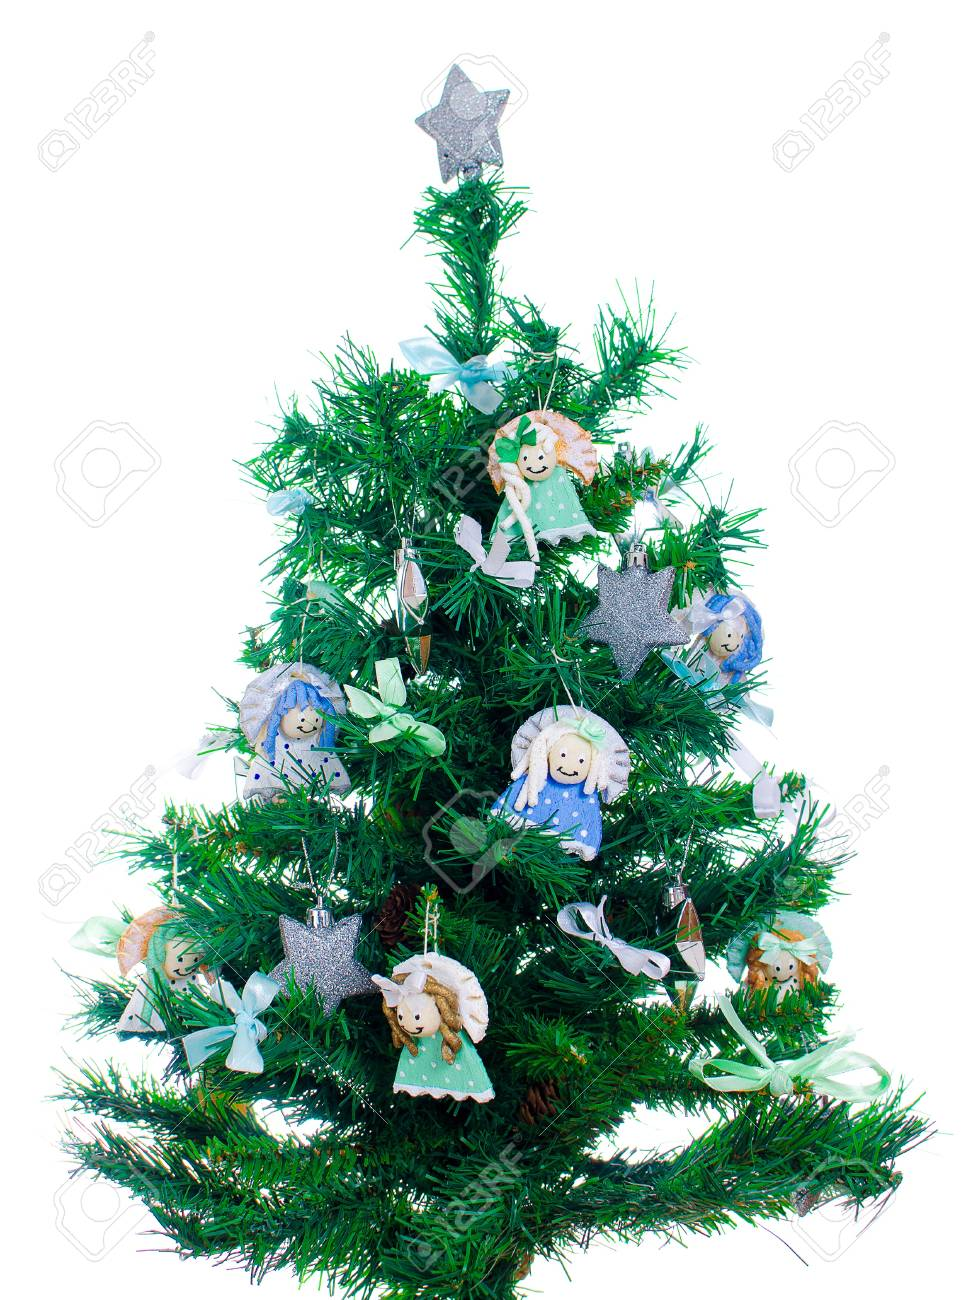 Little Xmas Tree With Handmade Decorations Isolated On White Stock